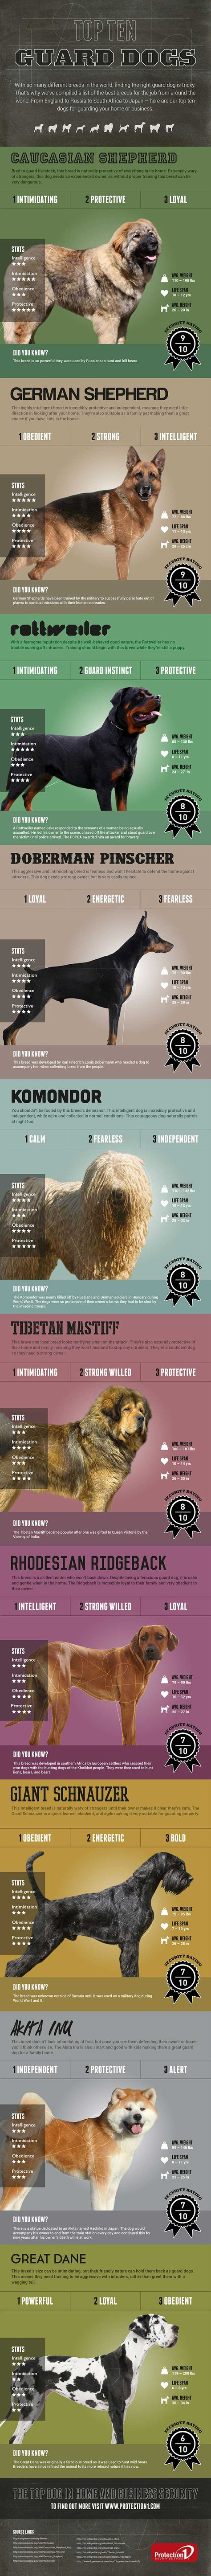 Mastiff dog breed information pictures characteristics amp facts - The 25 Best Dog Breed Info Ideas On Pinterest Puppy Care Dog Walking Services And Training A Puppy